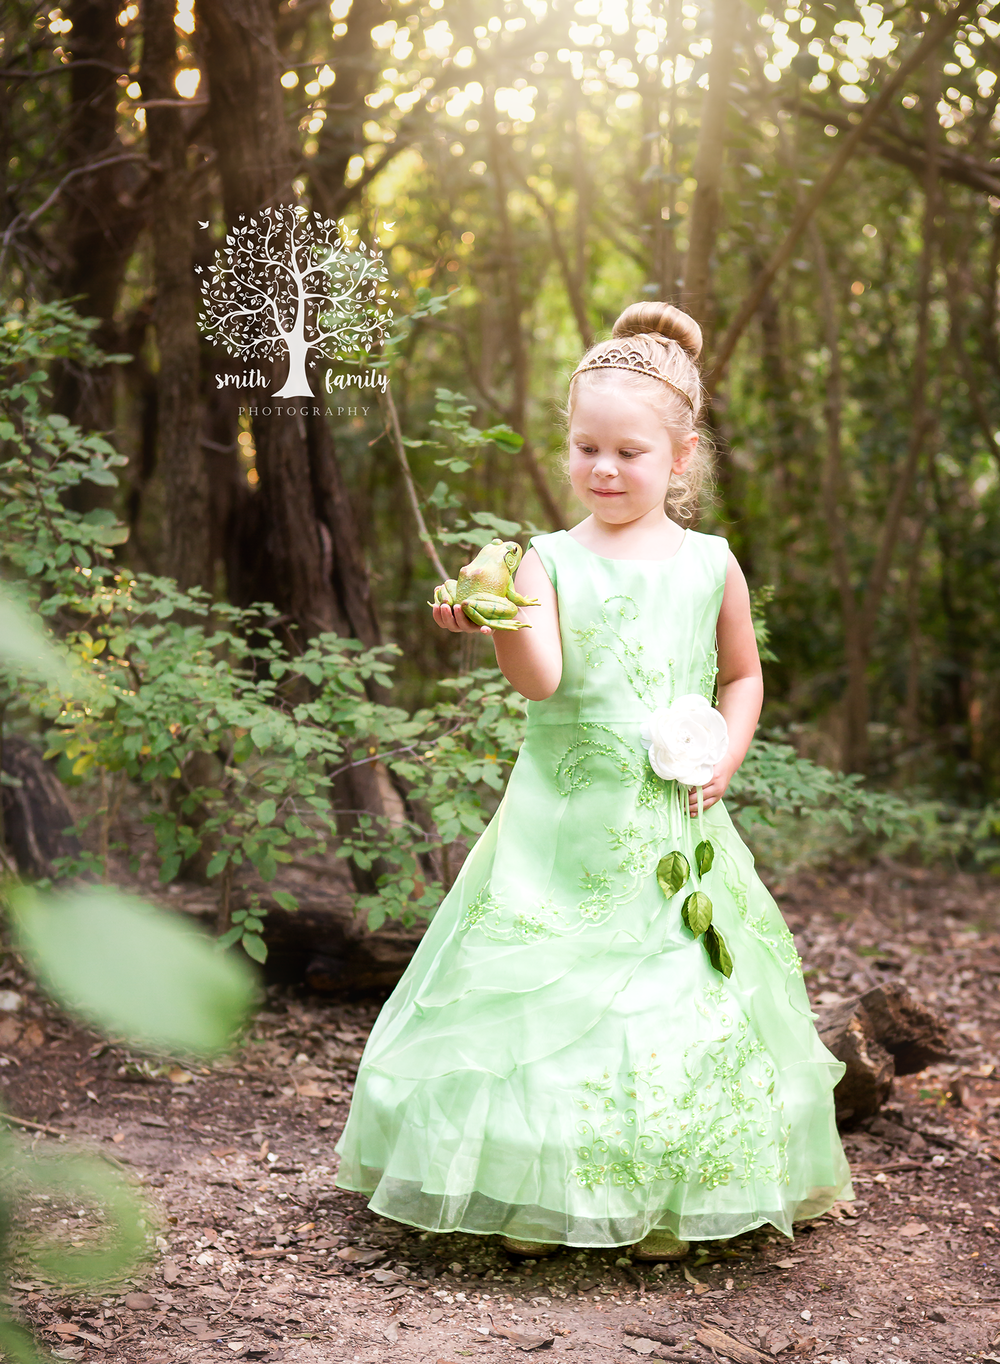 2017 - Fairytale Session. Layla had a birthday approaching and it was going to be Princess and the Frog (her favorite) themed so she had a session where she dressed up and posed like Tiana.